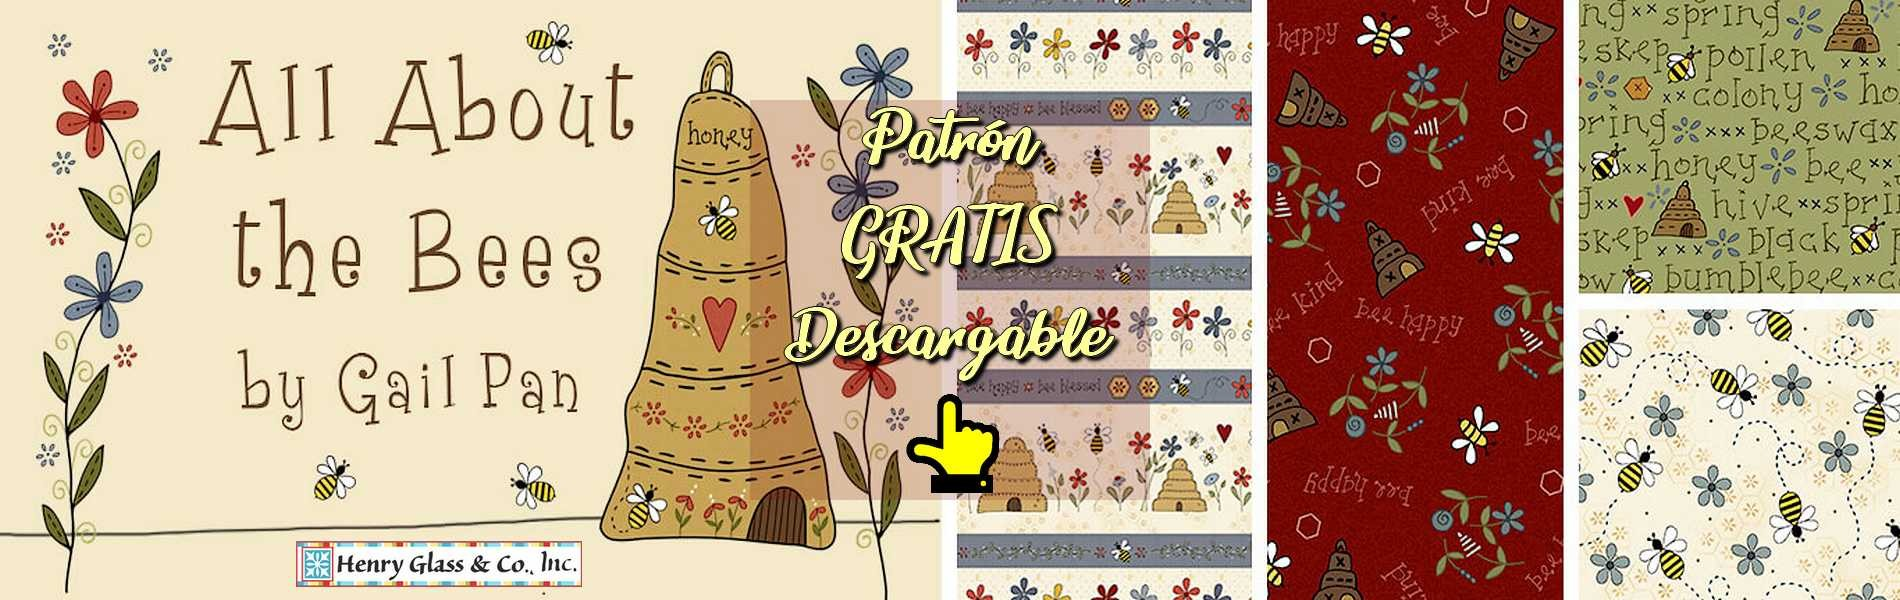 Telas patchwork colección All About the Bees de Gail Pan para Henry Glass